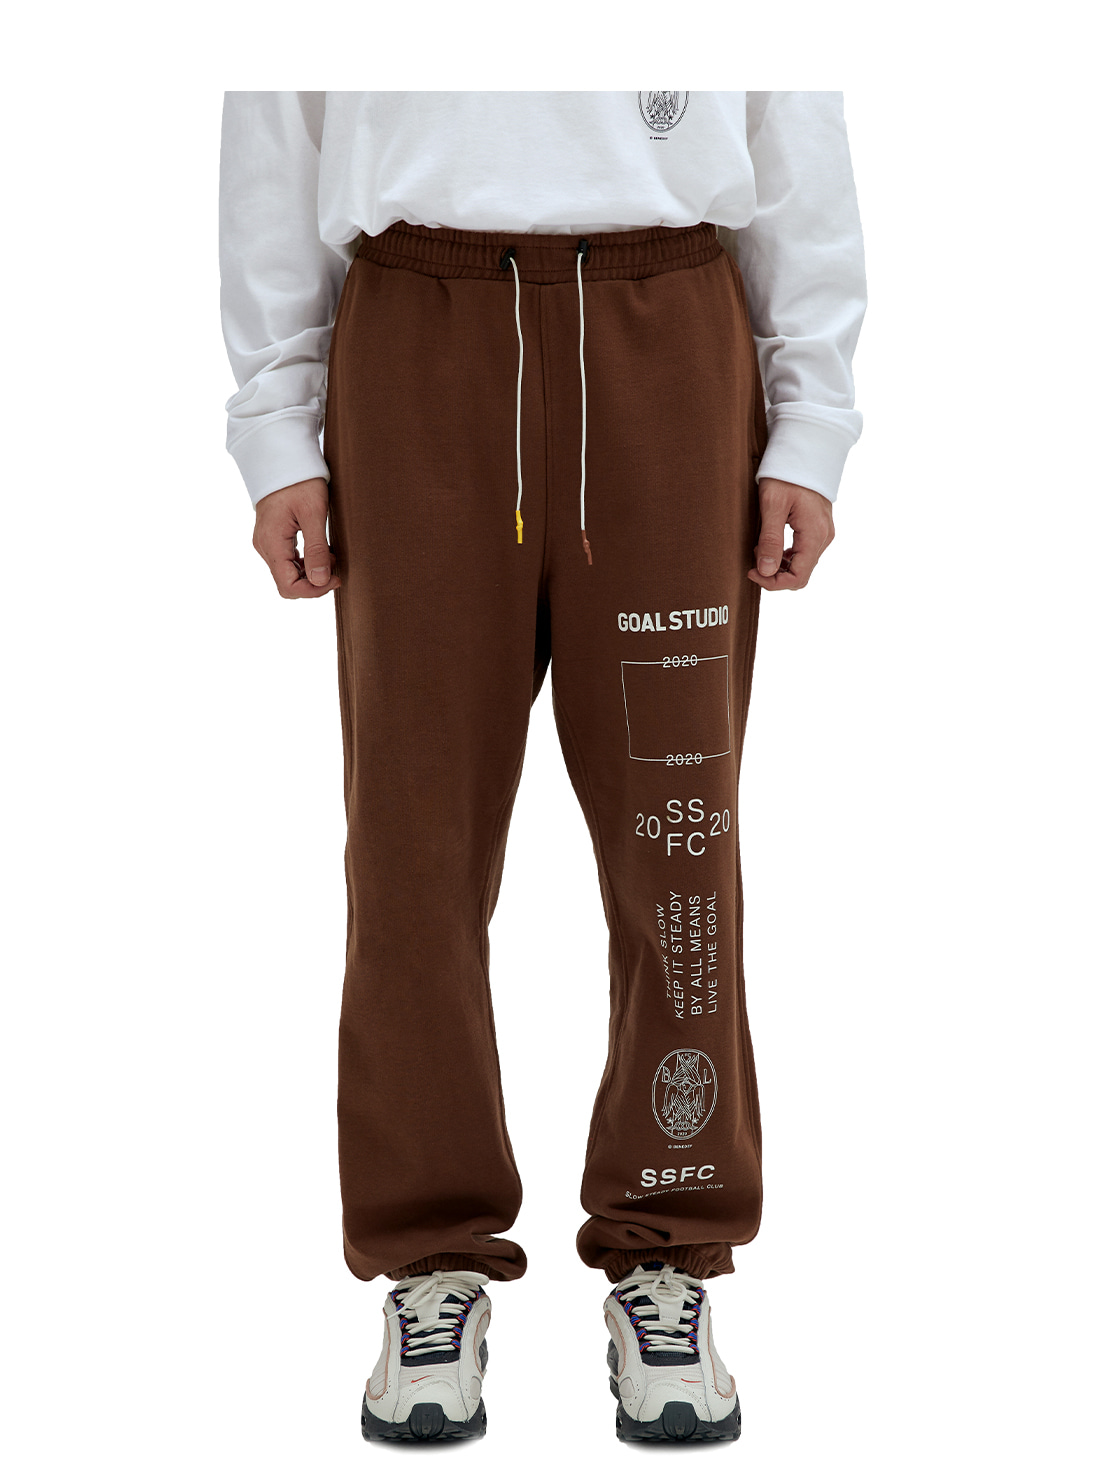 GOALSTUDIO SSFC JERSEY PANTS - BROWN